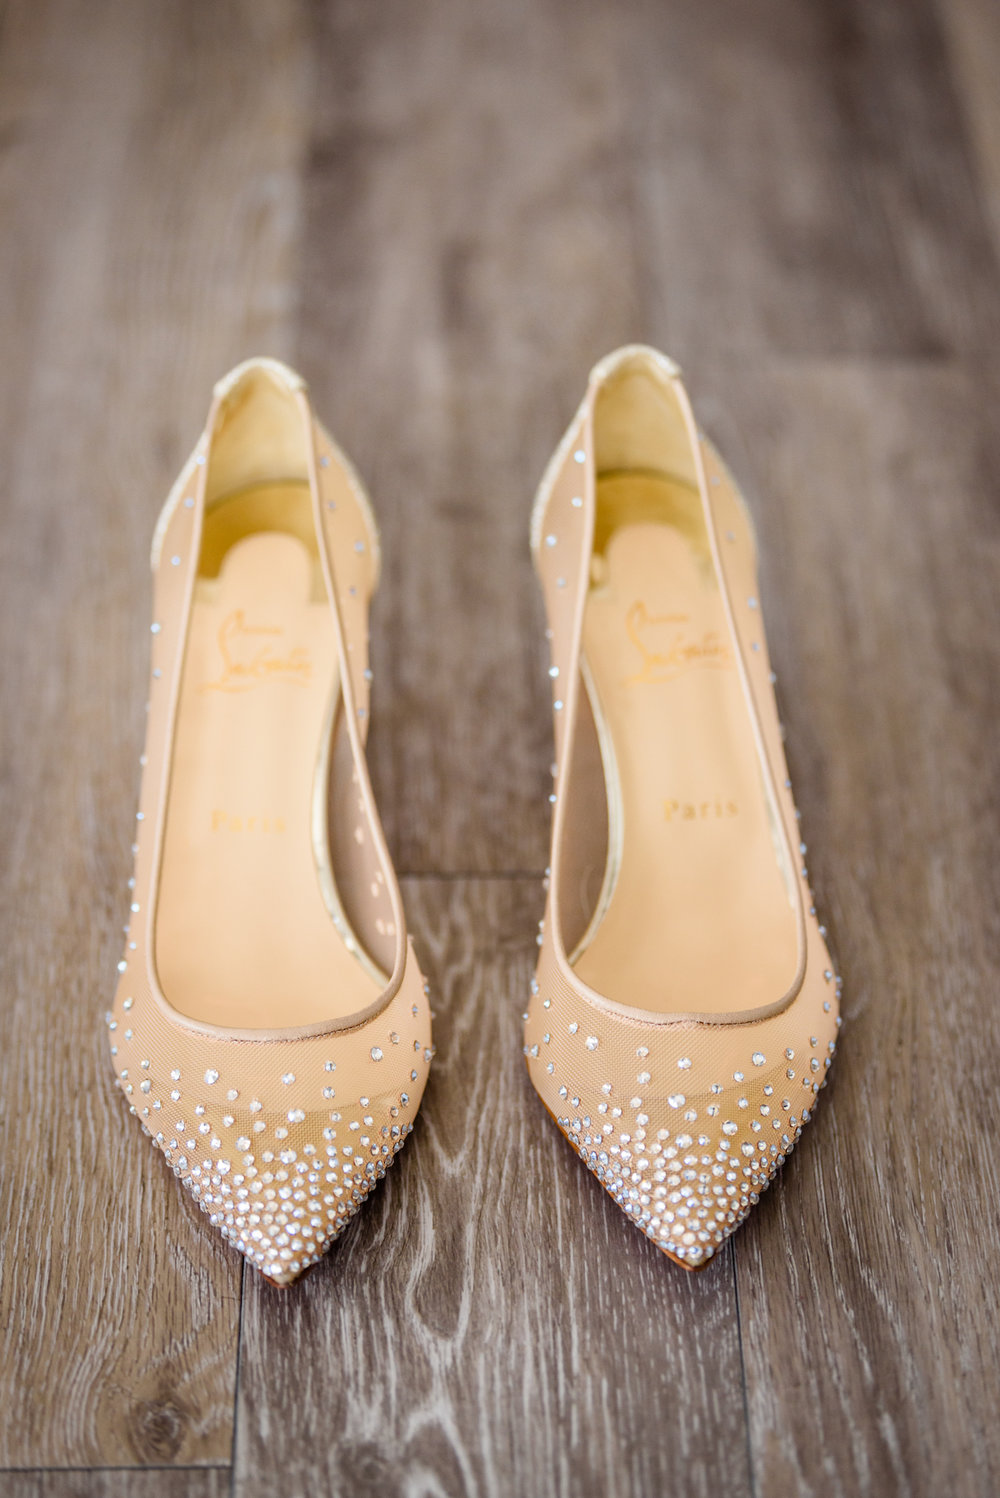 Weylin Wedding: Christian Louboutin wedding shoes